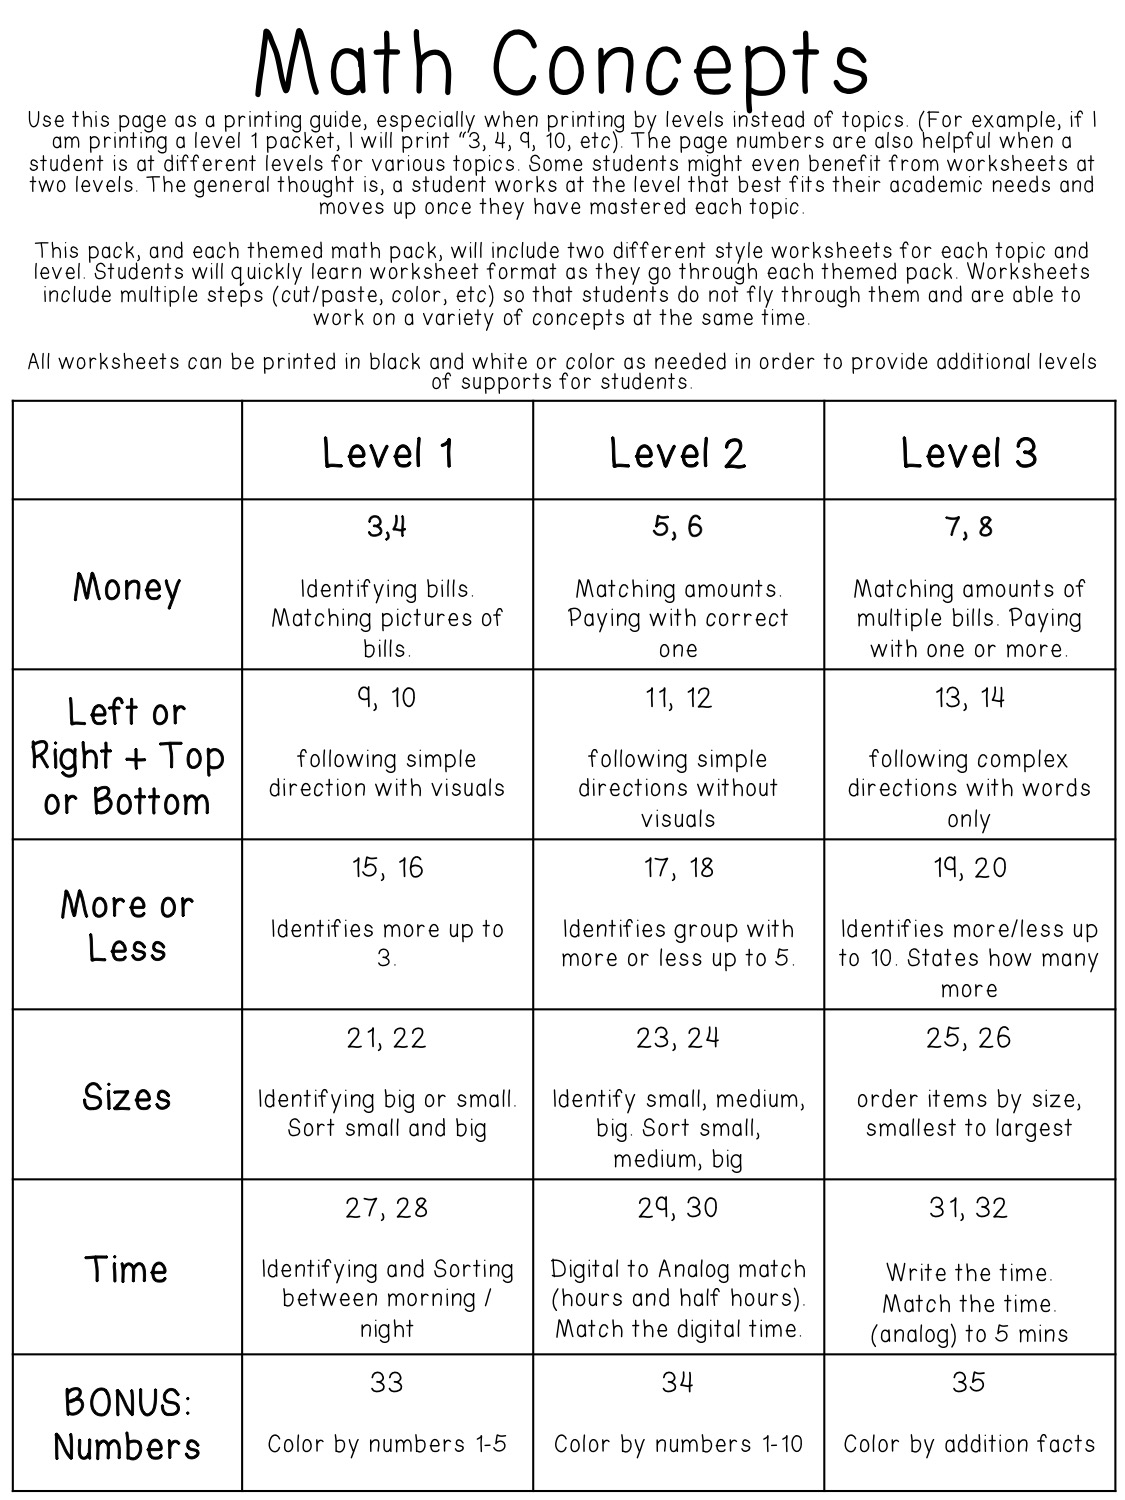 Worksheet Life Skills Math Worksheets Kerriwaller Printables – Basic Skills Math Worksheets